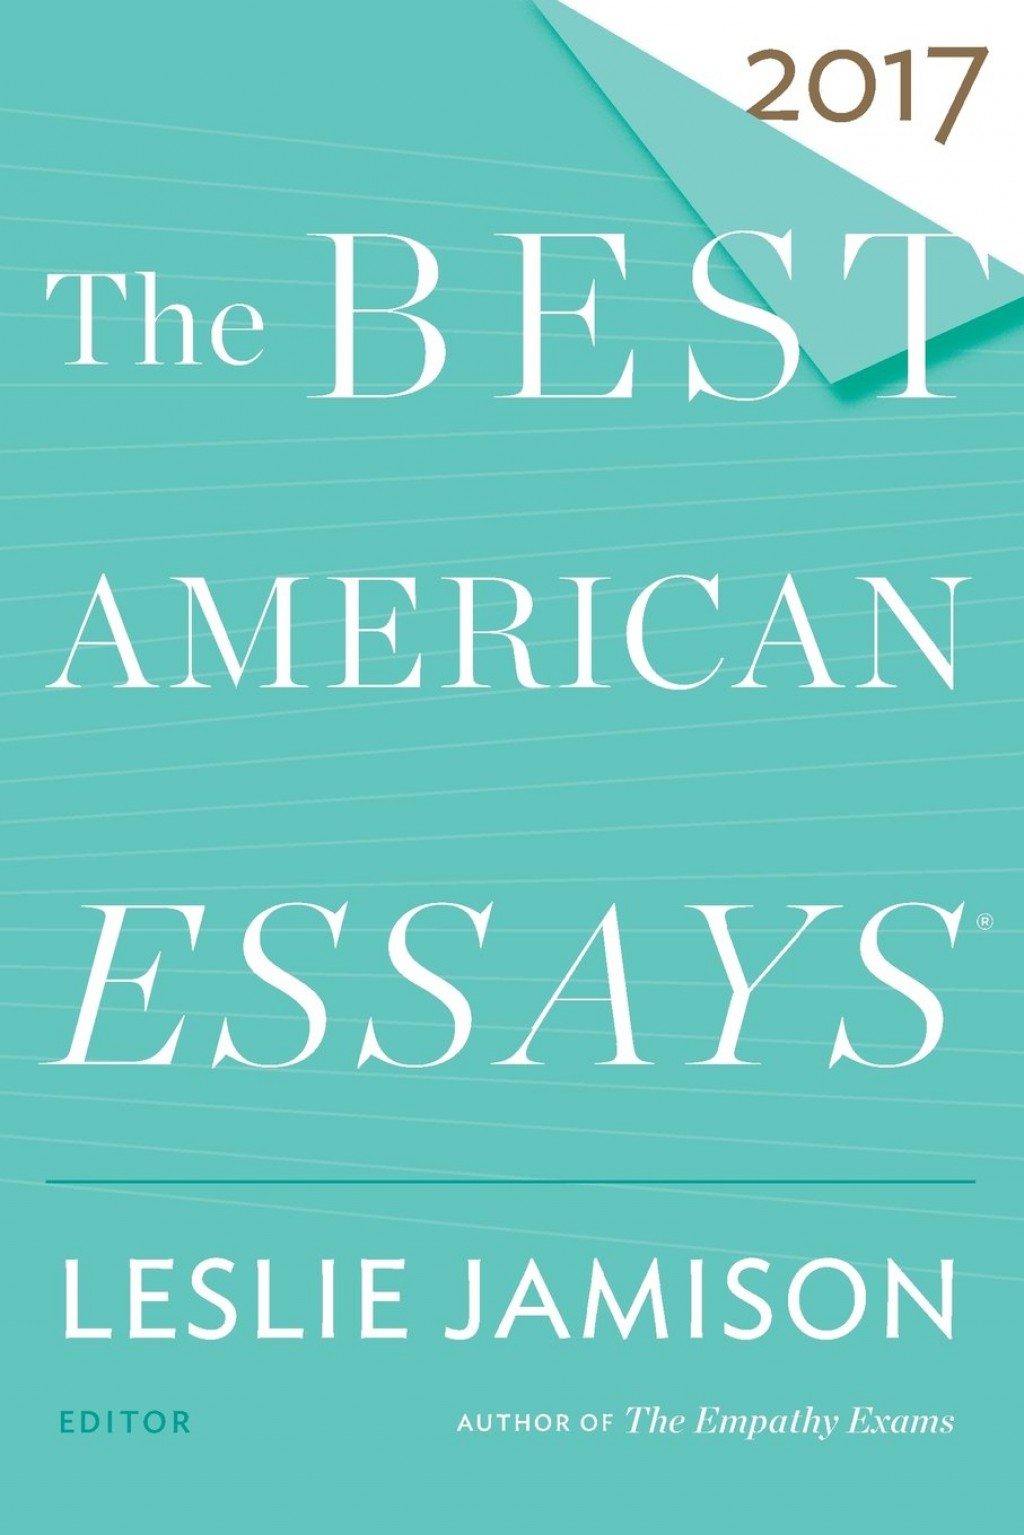 001 61tzl Nruvl Essay Example The Best American Wonderful Essays 2013 Pdf Download Of Century Sparknotes 2017 Large